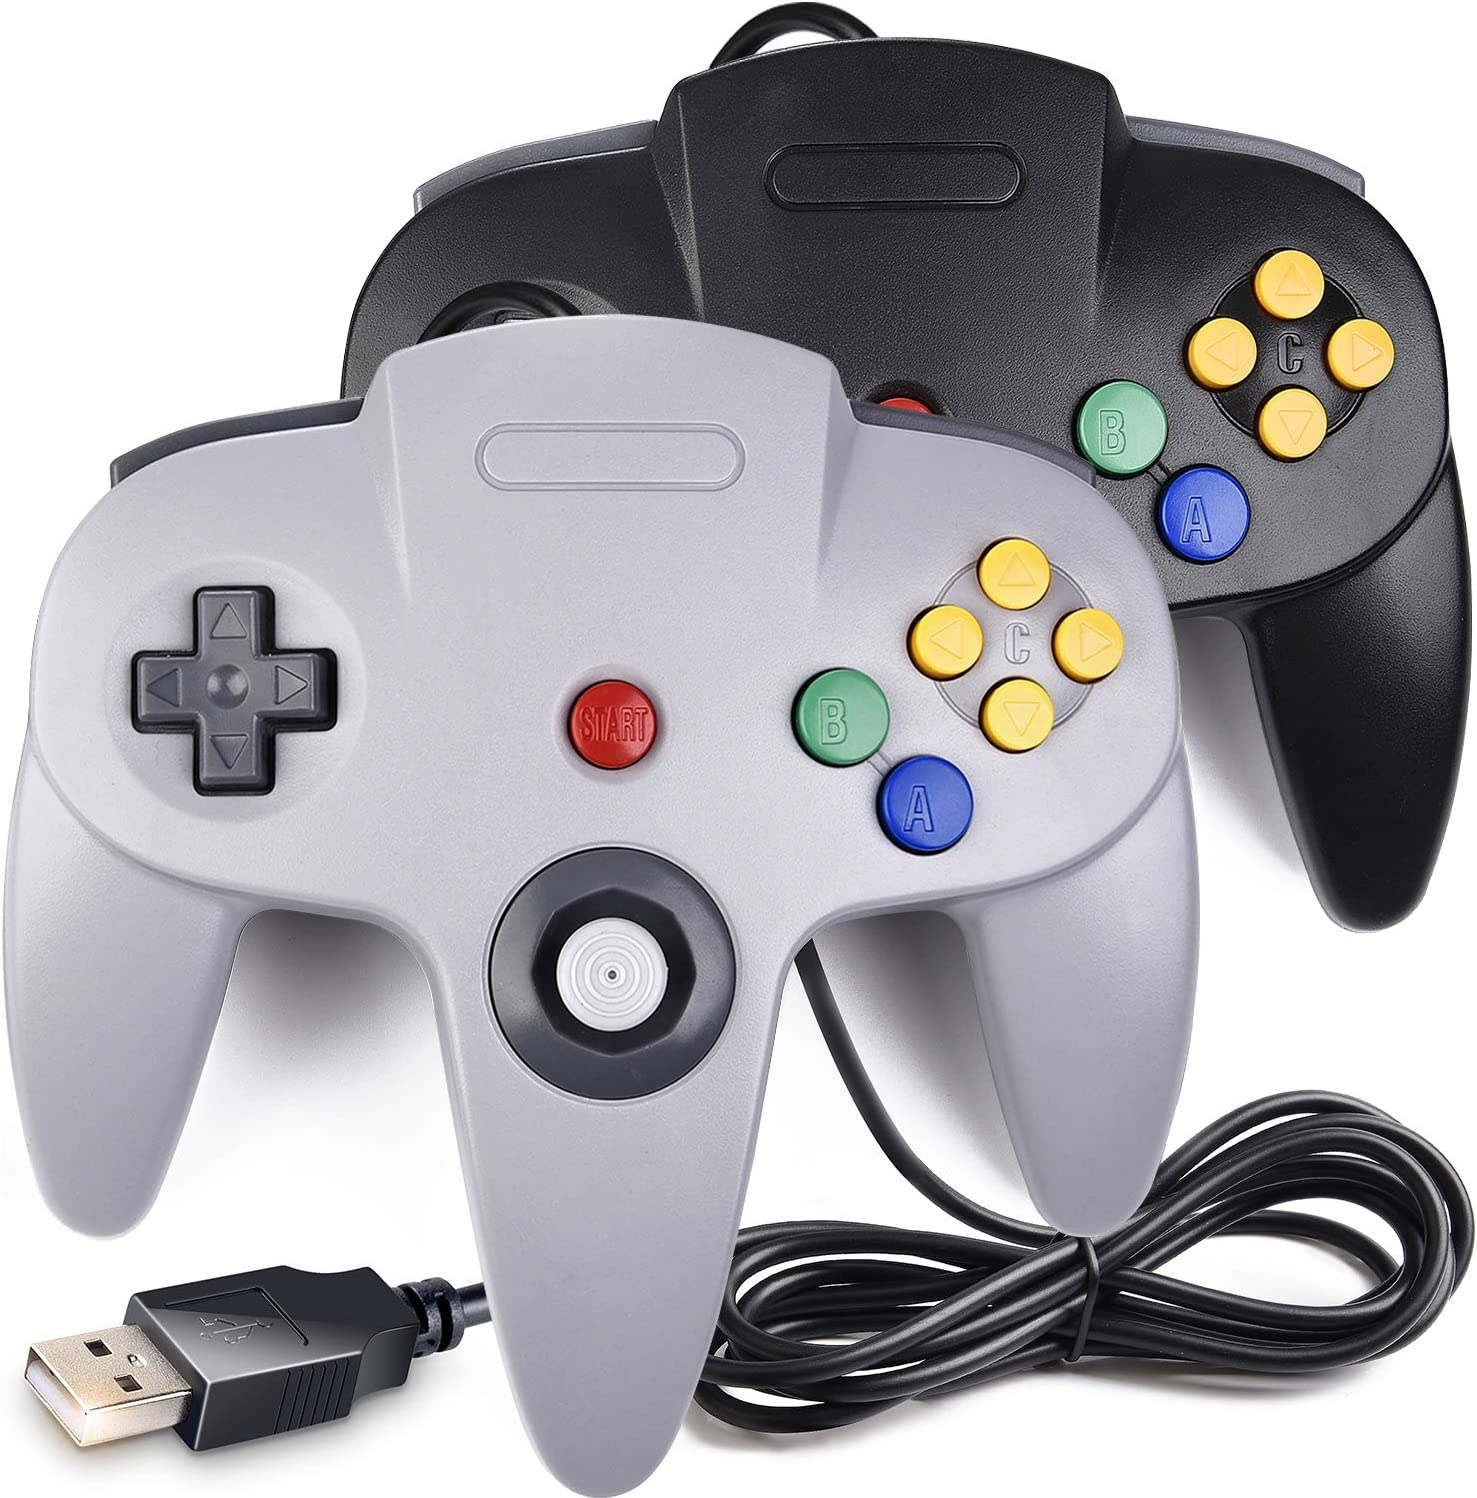 [USB Version] 2 Pack Classic N64 Controller, iNNEXT N64 Wired USB PC Game pad Joystick, N64 Bit USB Wired Game Stick for Windows PC MAC Linux Raspberry Pi 3 Genesis Higan (Black/Grey)